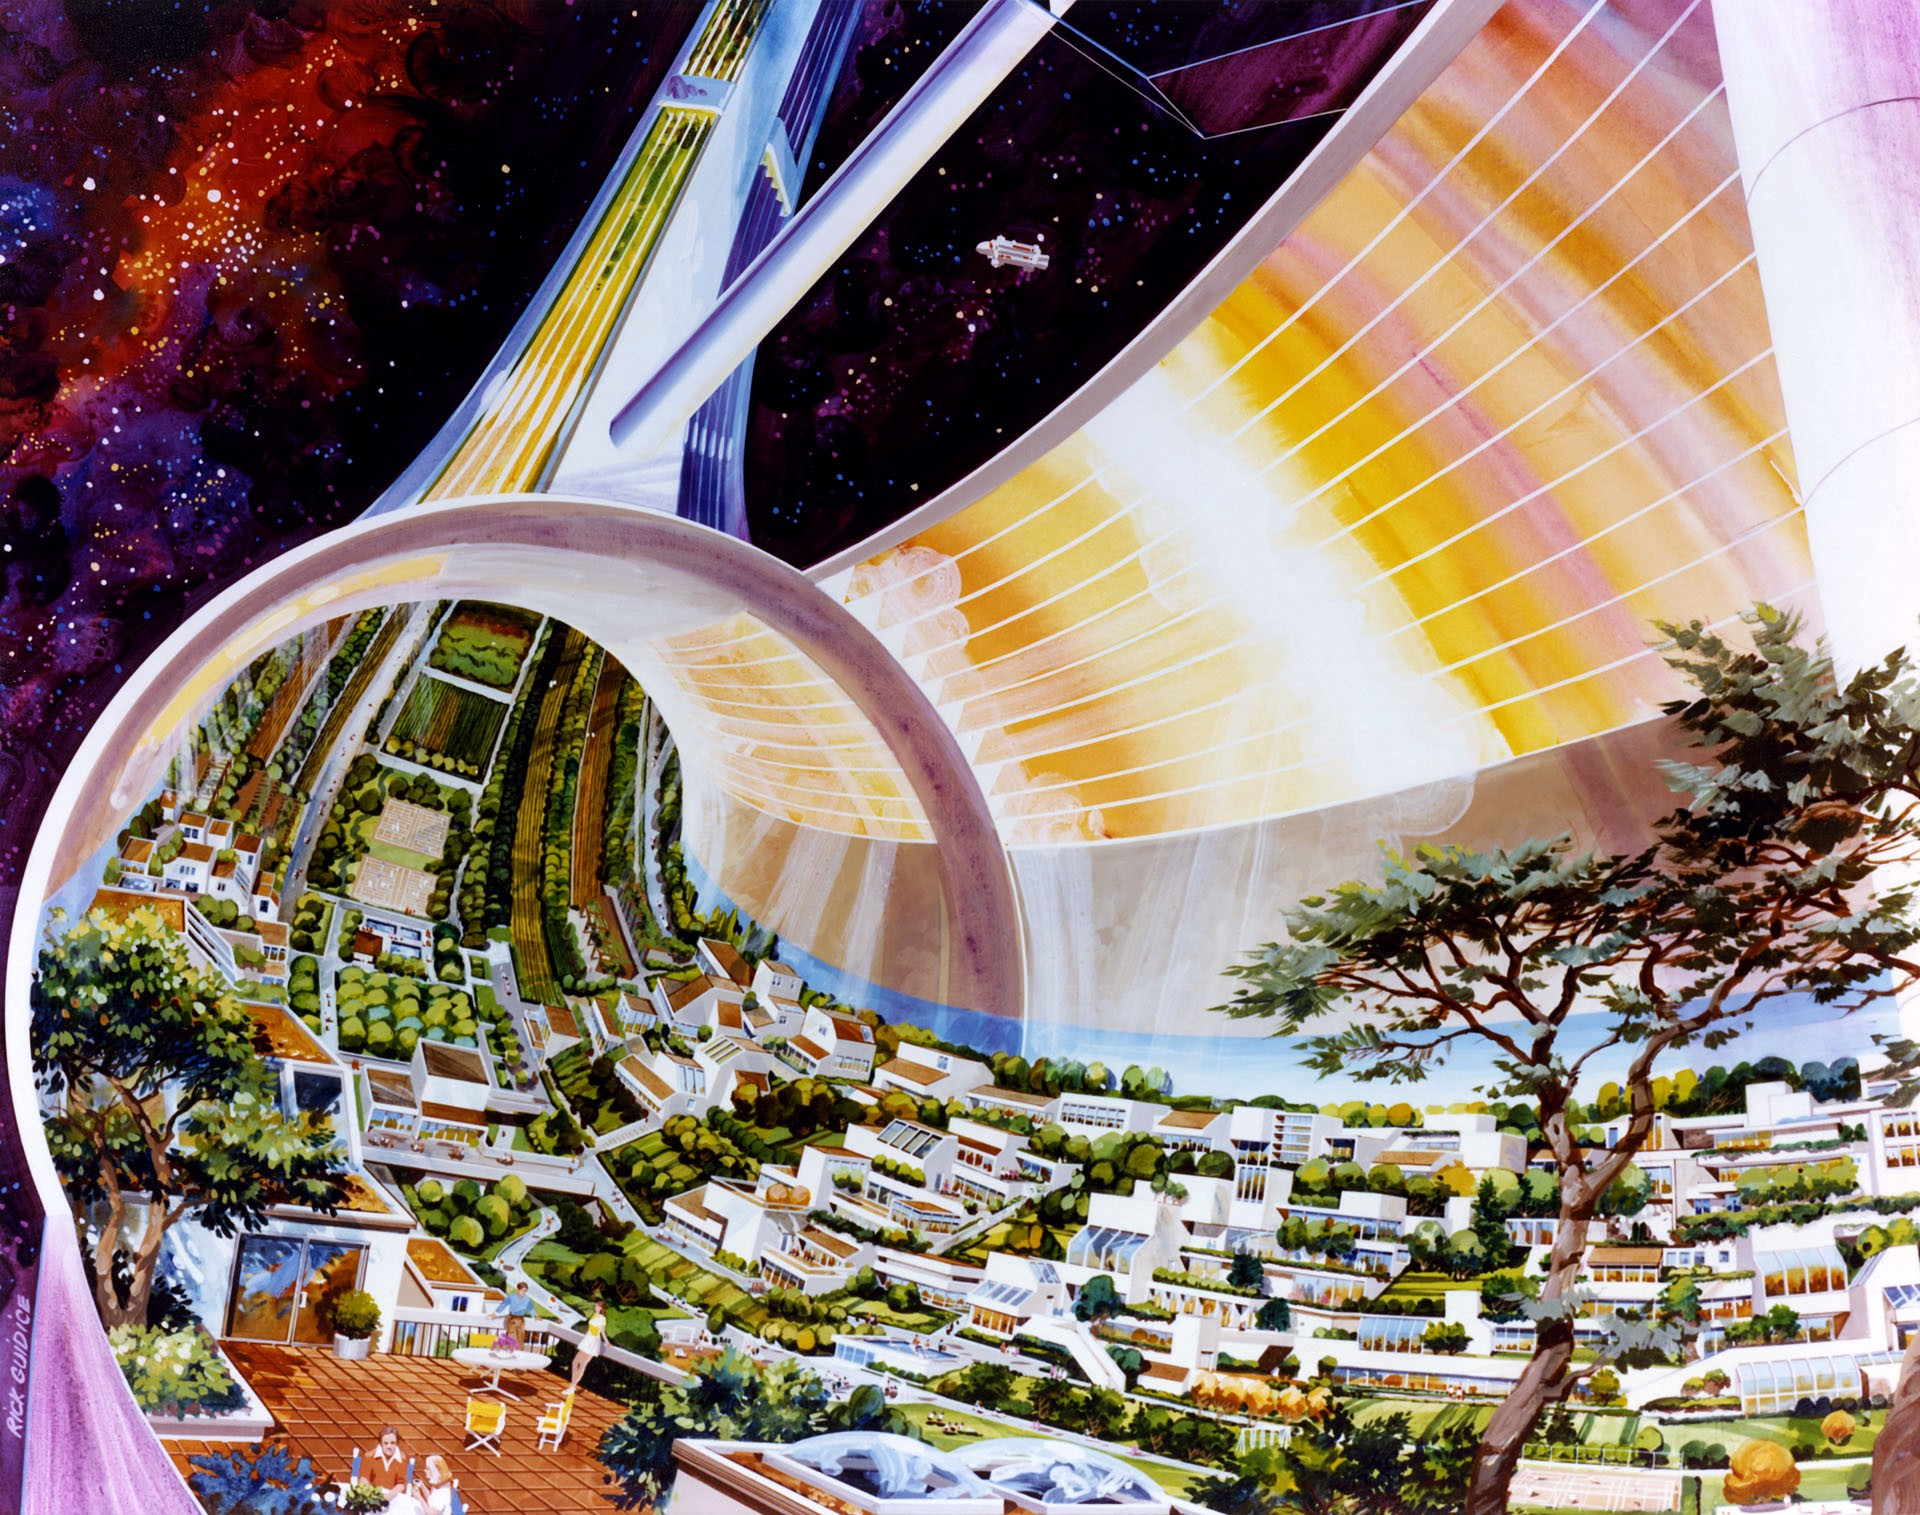 Artistic rendering of 1970s space colony concept  NASA Ames Research Center/Rick Guidice